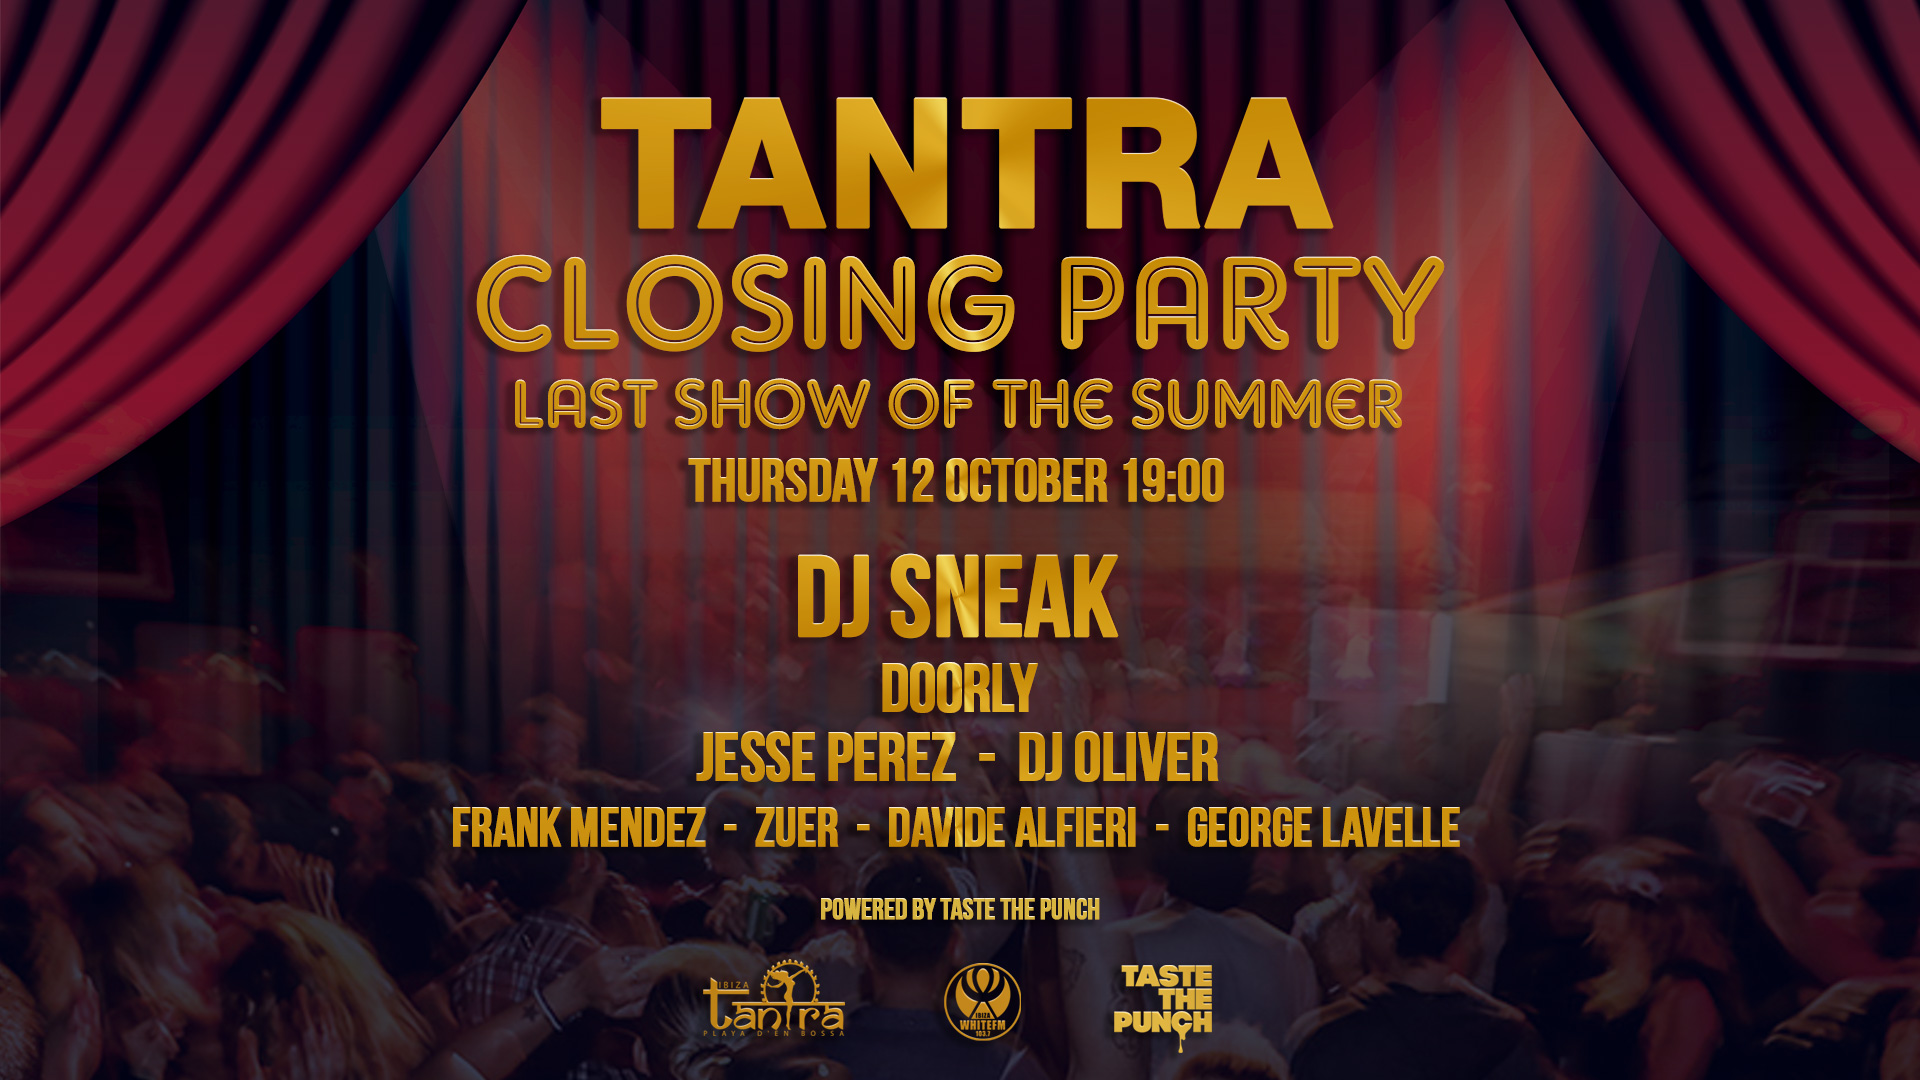 Tantra closing party 12 10 17 ibiza taste the punch for Punch com